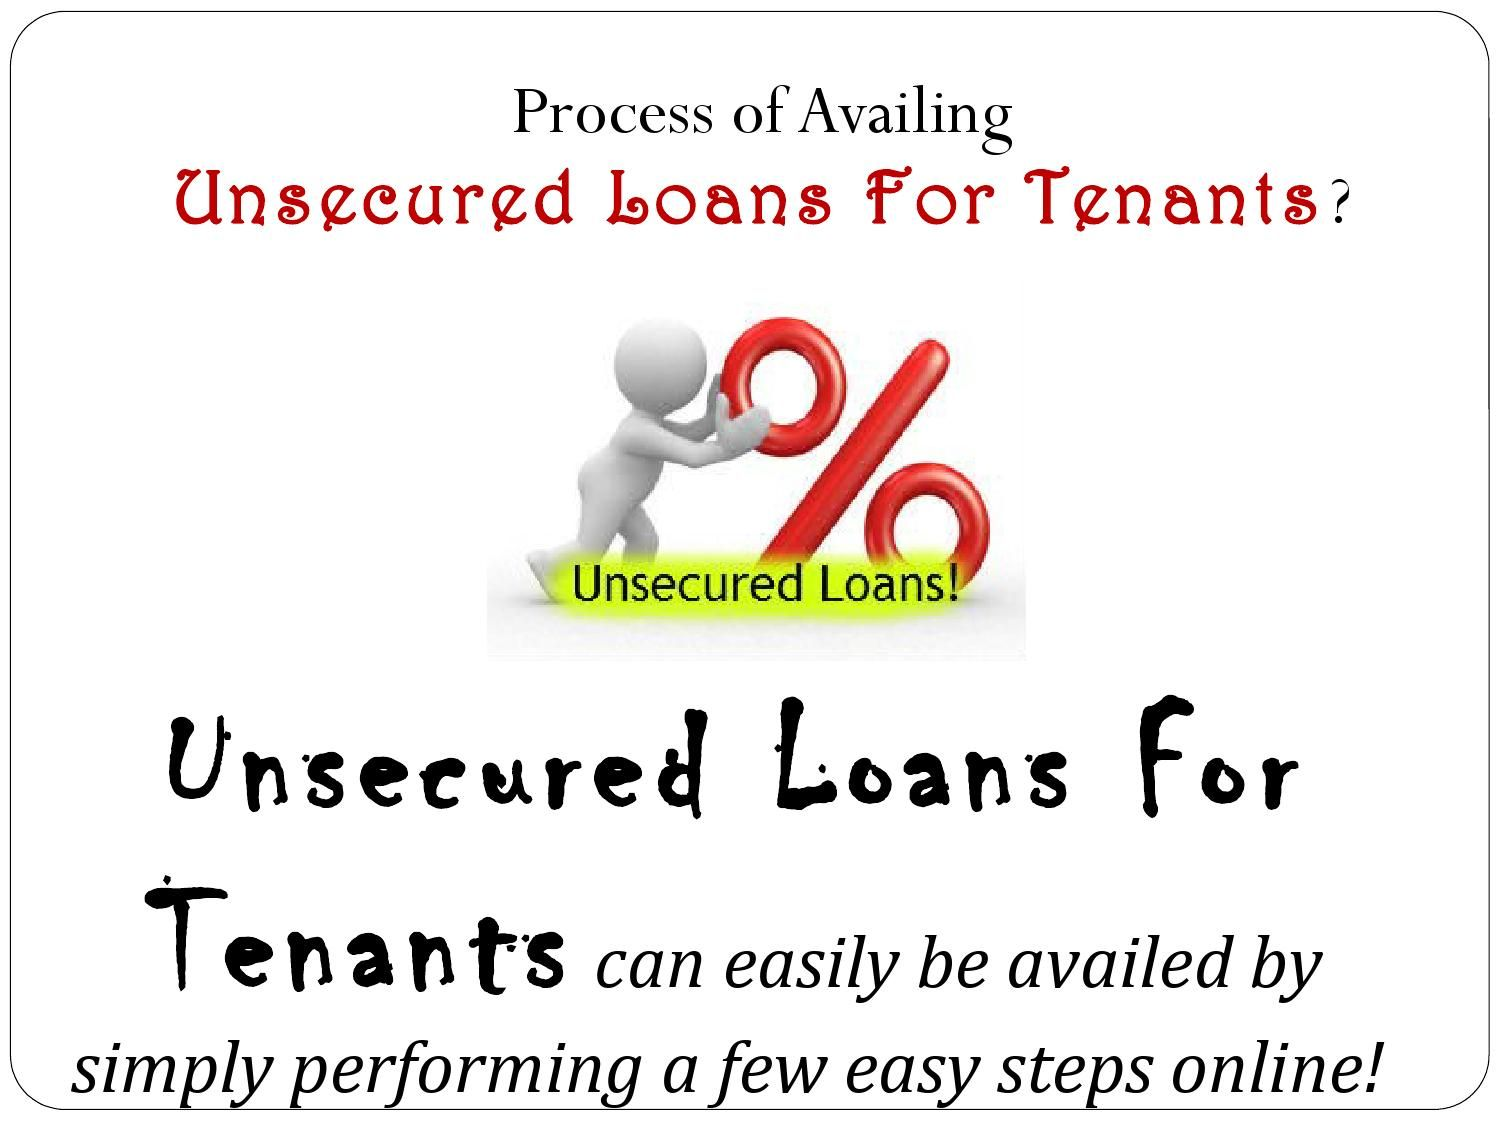 Unsecured Loans For Tenants Obtain Needed Money In Emergency With Ease Unsecured Loans Loan Emergency